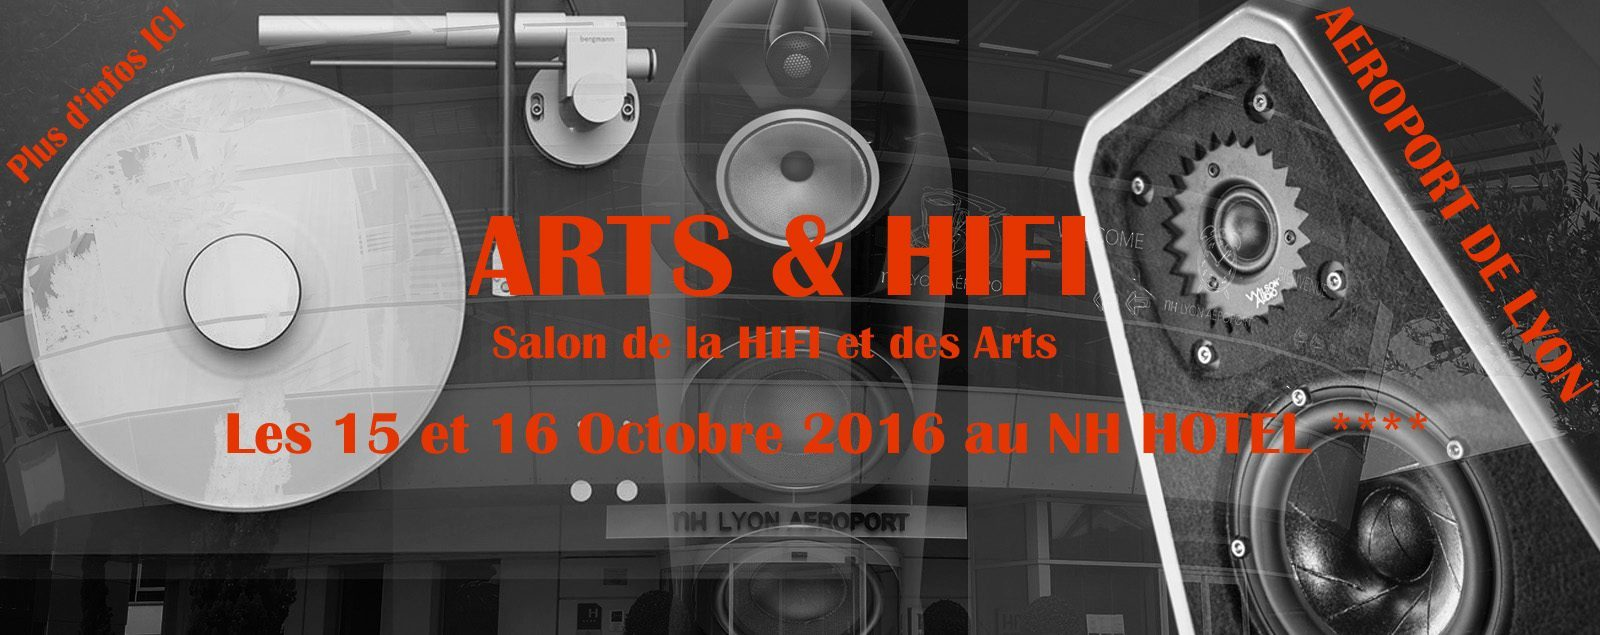 2016 salon hifi de lyon les 15 16 octobre 30074031 for Salon lyon 2016